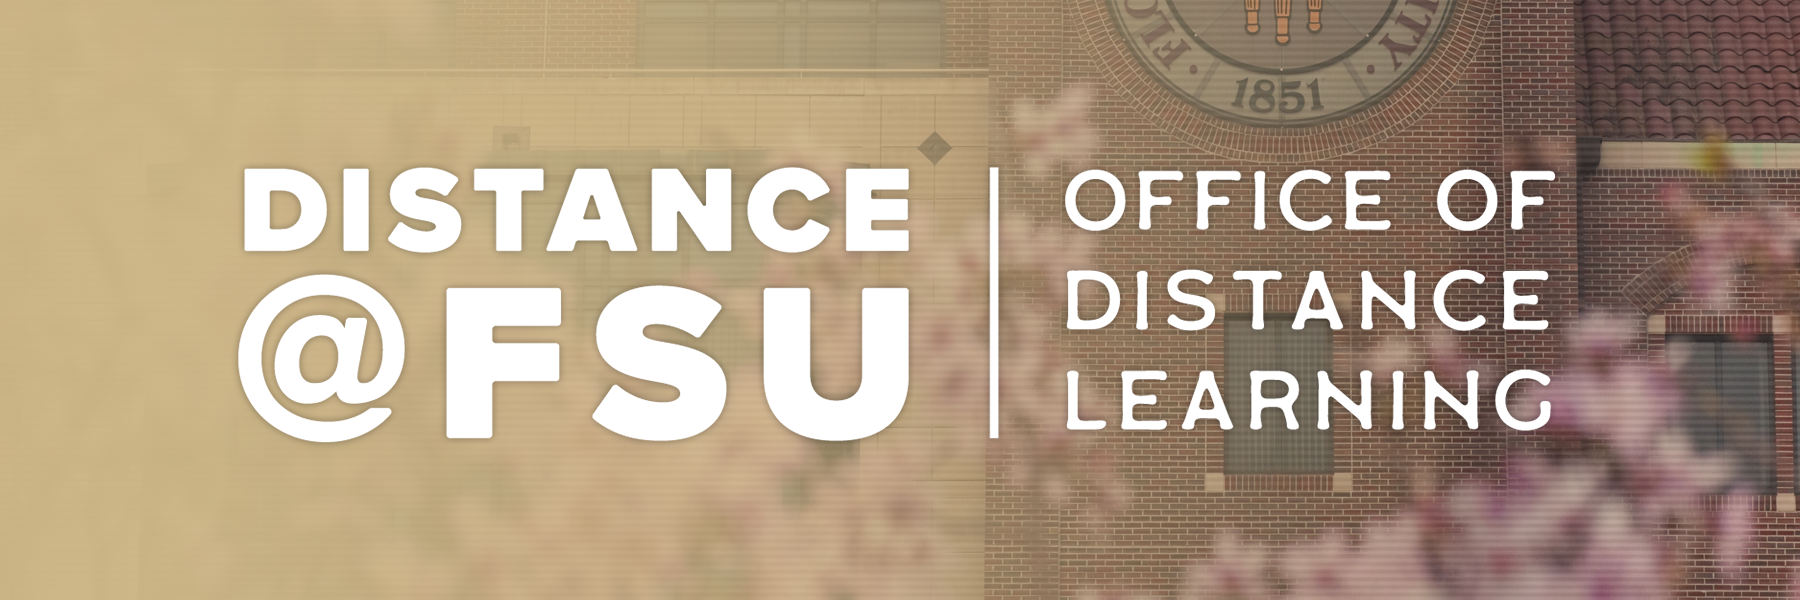 distance at fsu | Office of Distance Learning